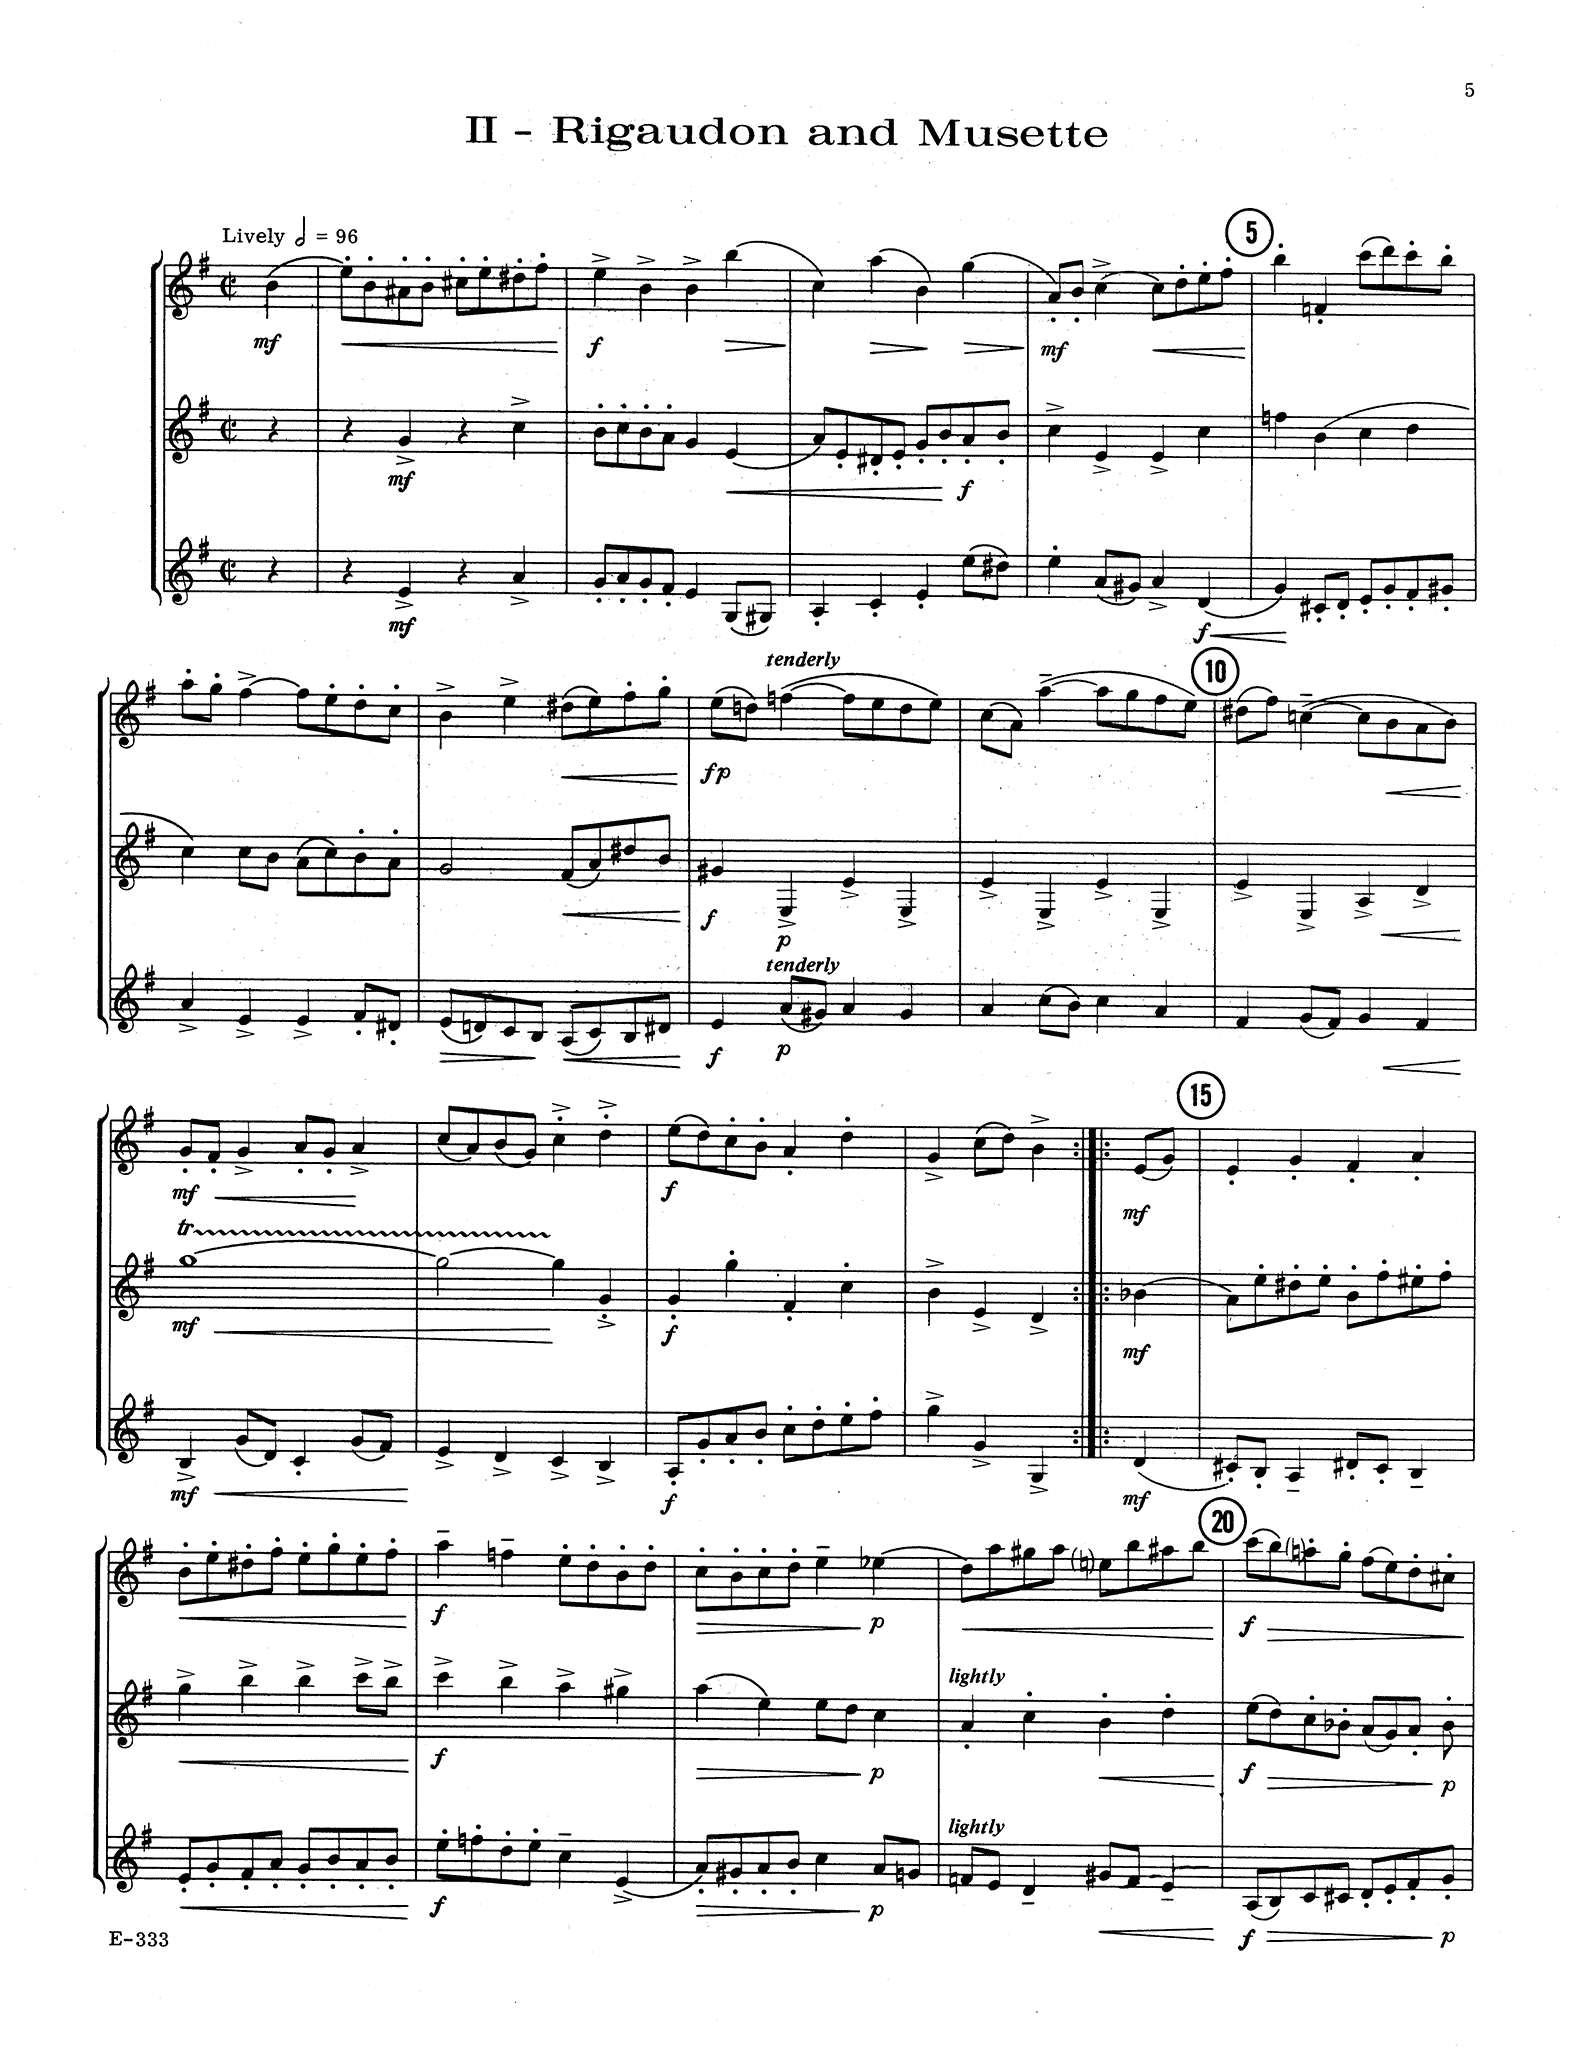 Two Movements from Trio in D Minor, Op. 49 No. 1 - Movement 2